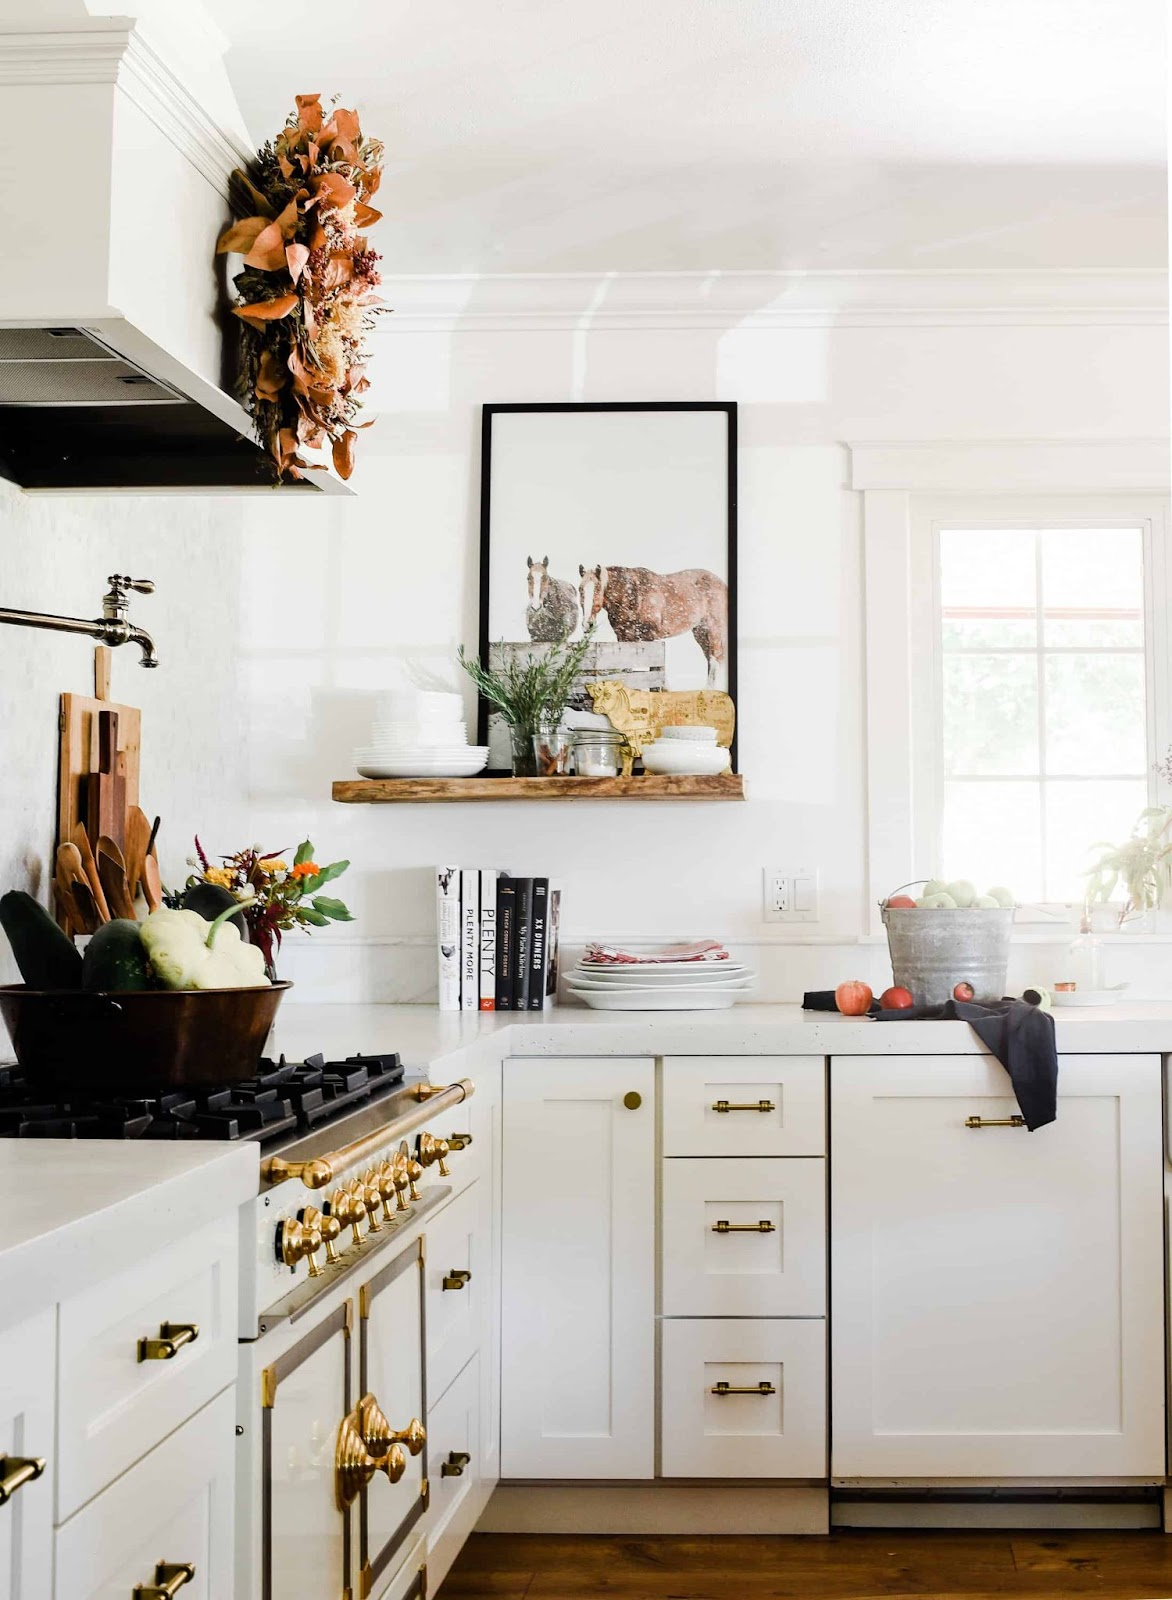 White kitchen setting with seasonal fall decor. Pumpkins and gordes and apples in a silver bucket.